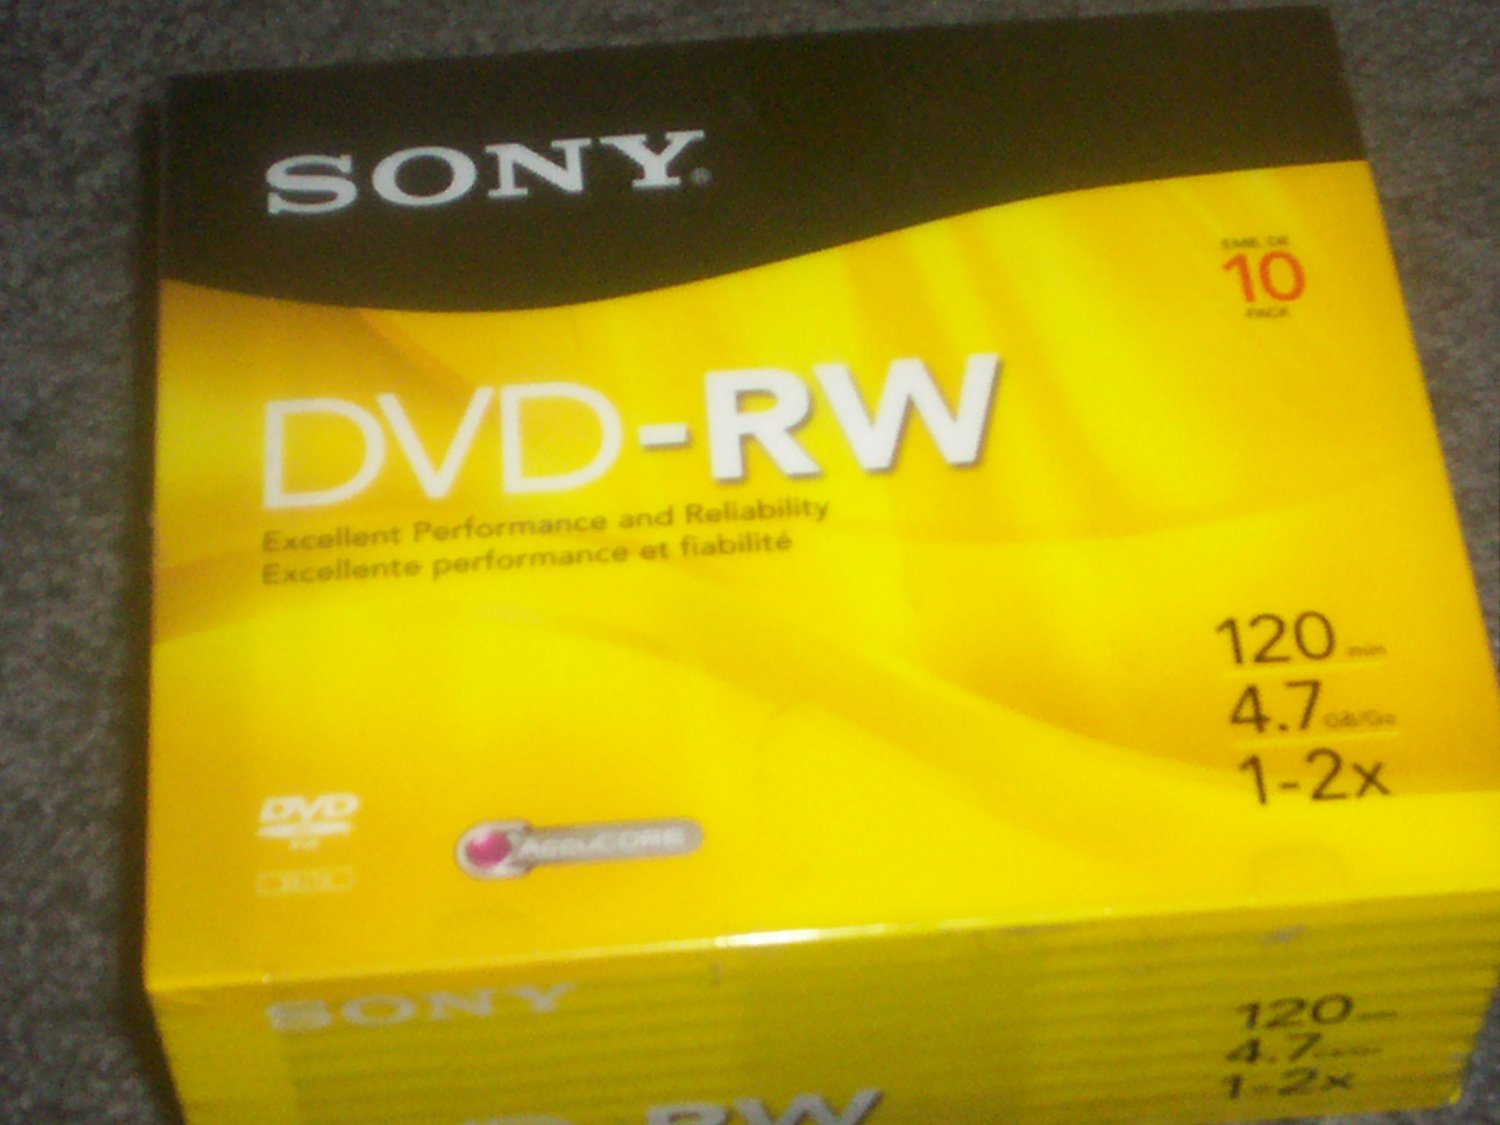 SONY 1-2X 4.7GB 120Min DVD-RW Blank Media Disc